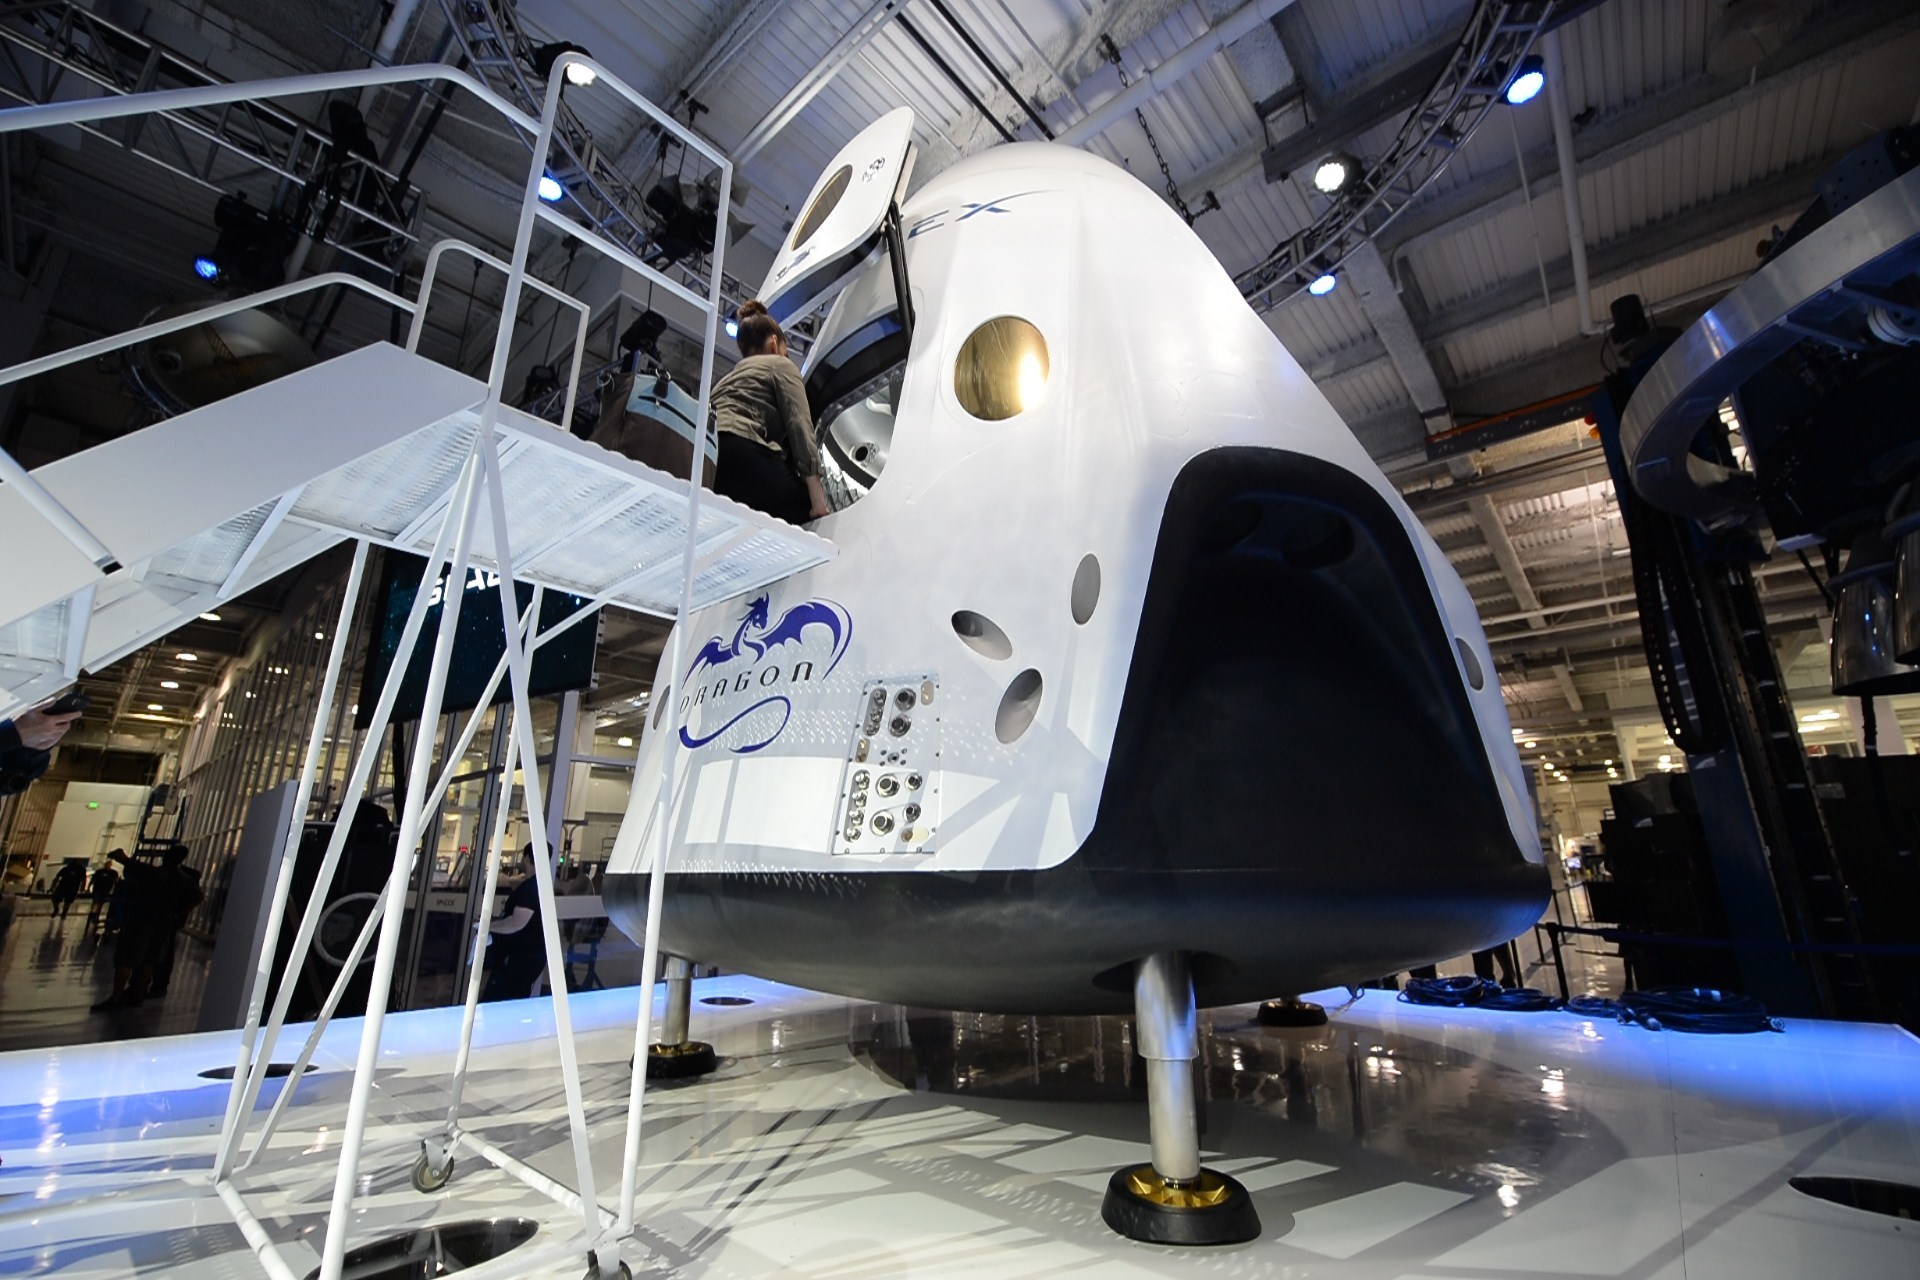 US-SPACE-SPACEX-DRAGON V2 SPACECRAFT-ELON MUSK